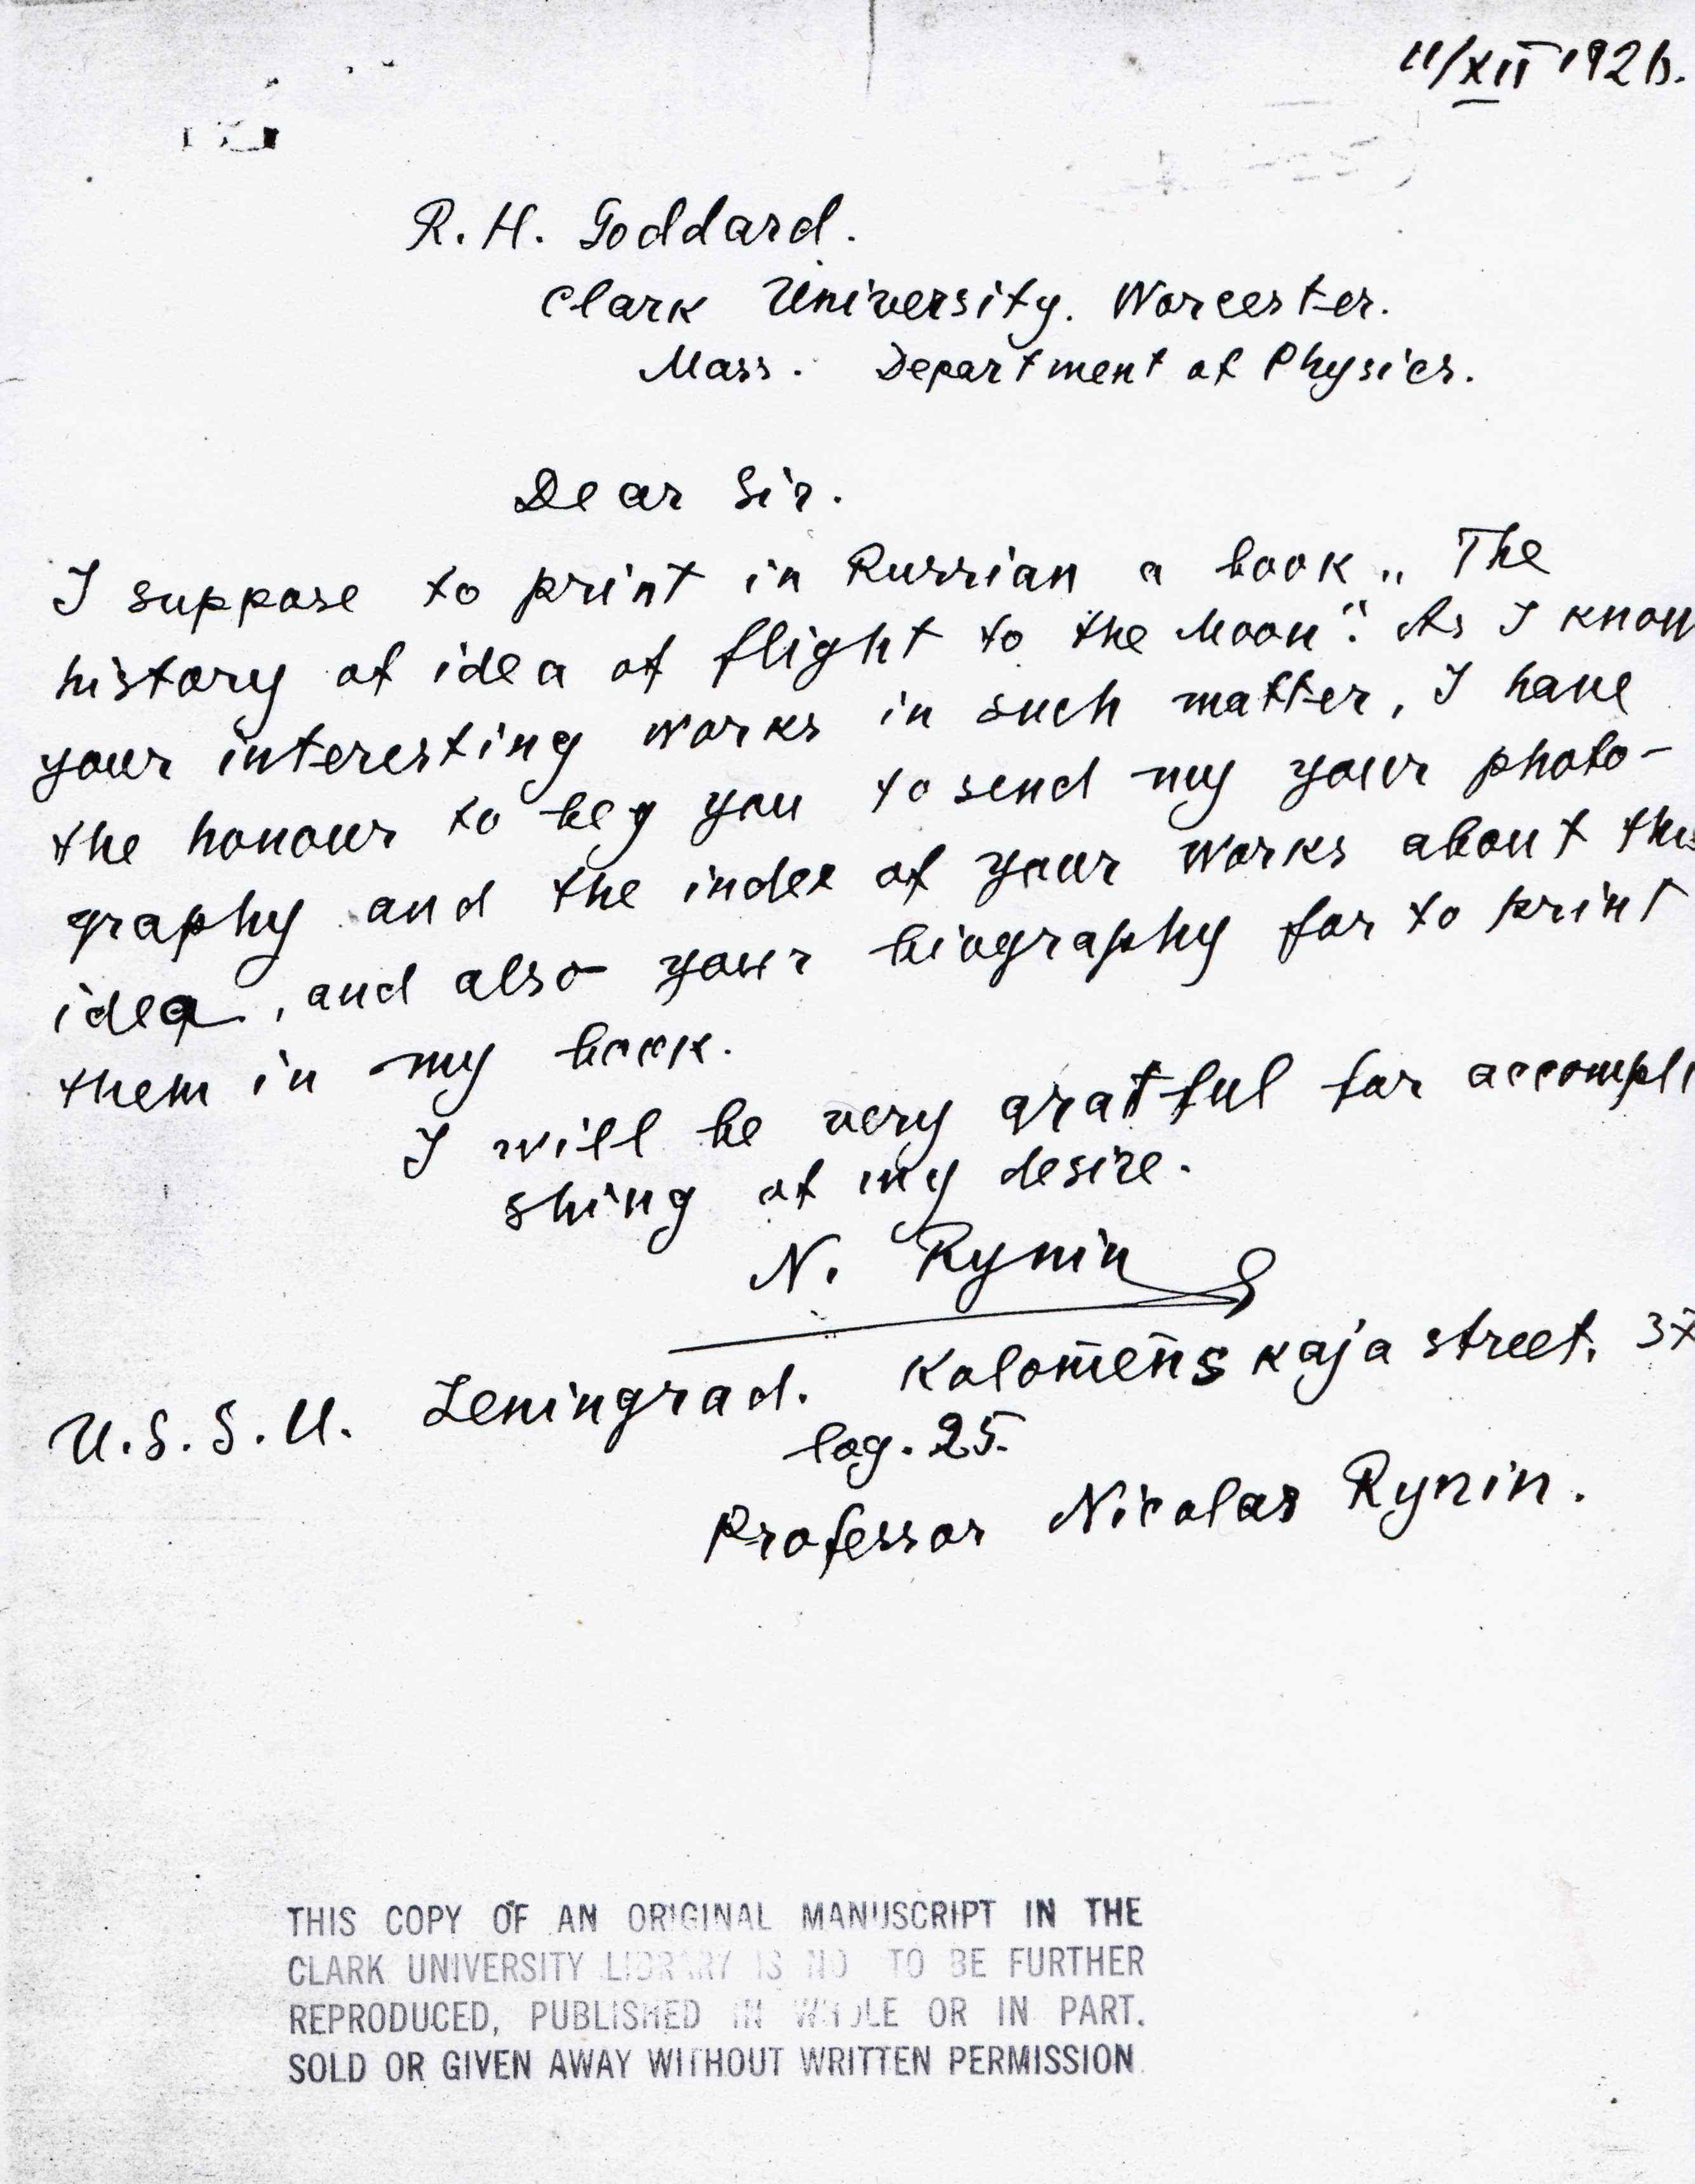 A letter from N. A. Rynin, a well-known science popularizer, to the American rocket pioneer Robert Goddard, asking the latter to send him materials related to his work. Such exchanges across international borders were quite common in the 1920s.